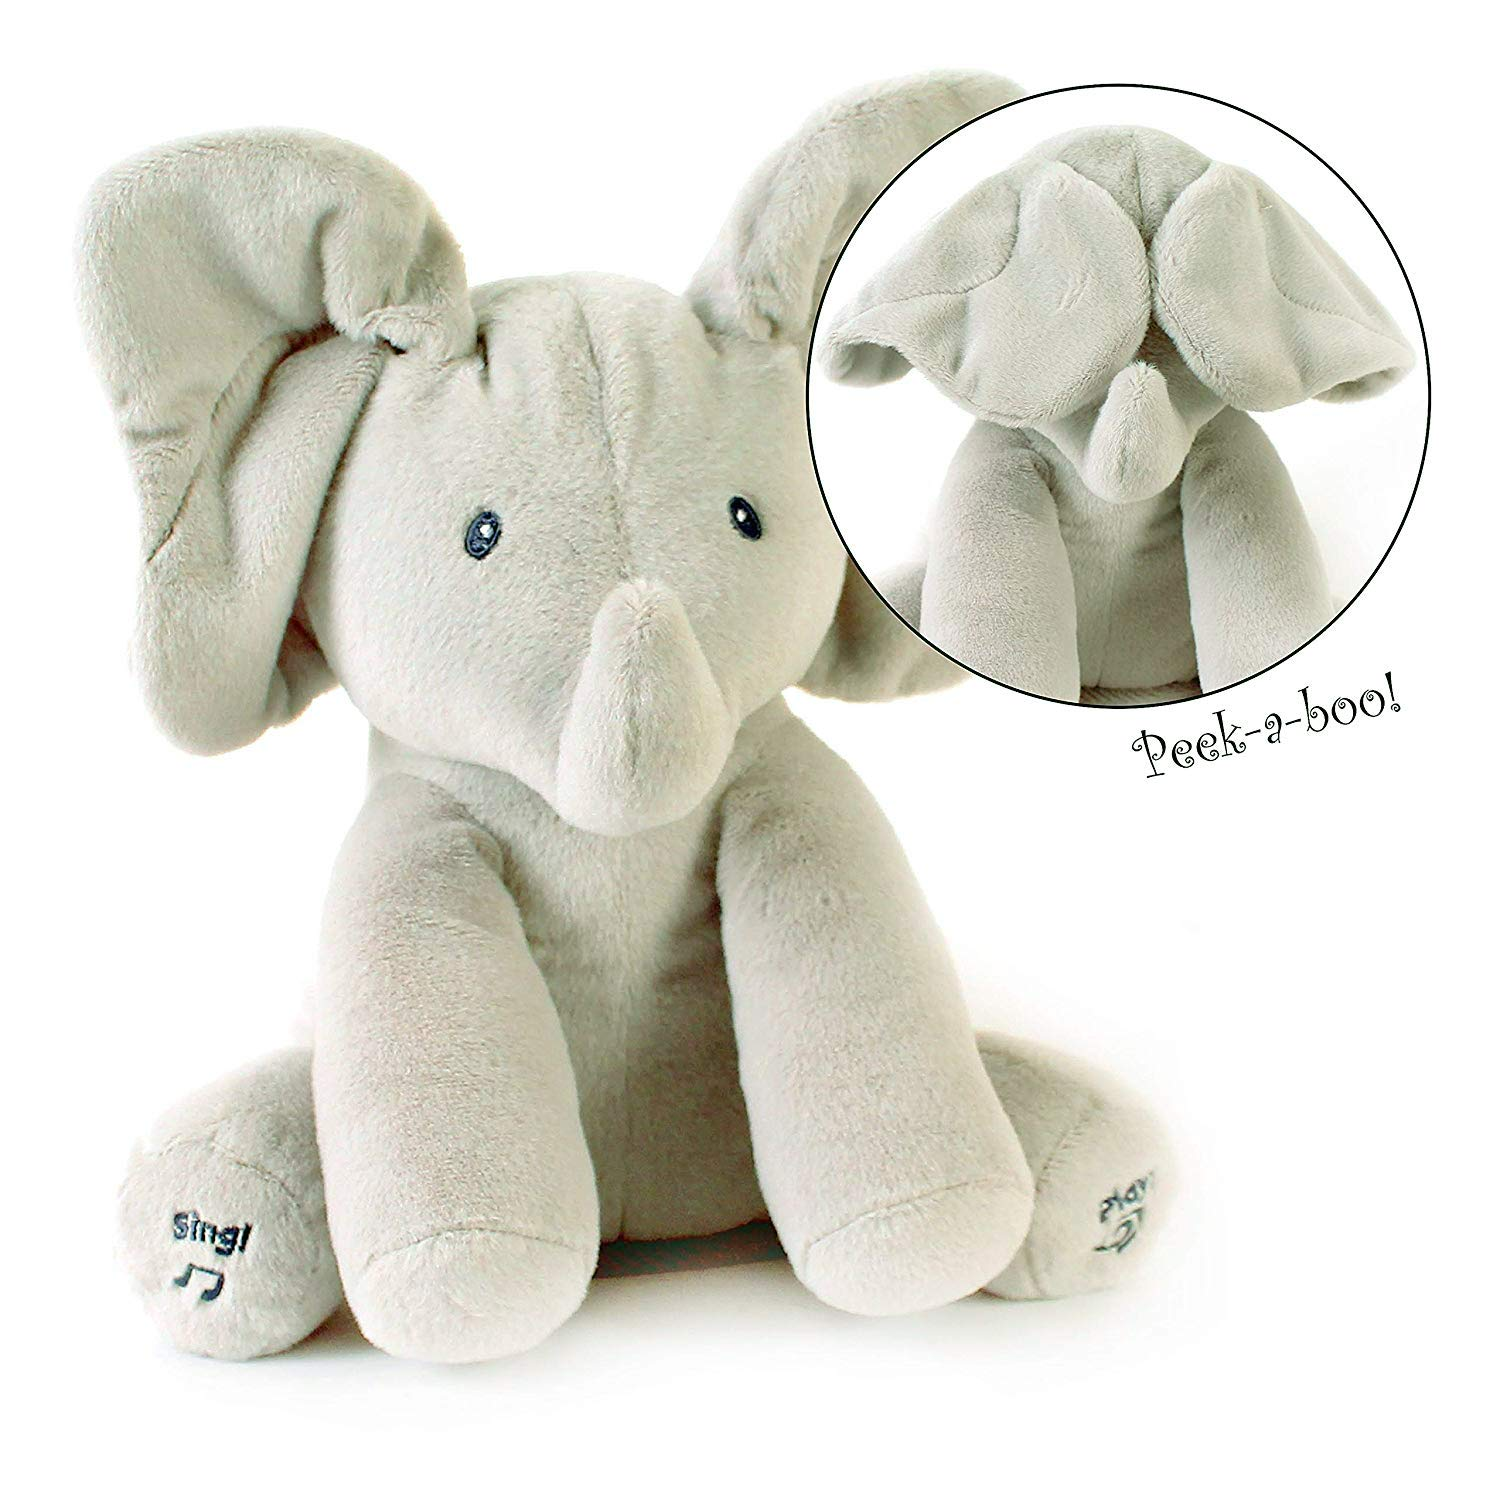 Yiwant Plush Toy Peek-a-Boo Elephant, Hide and Seek Game Baby Animated Flappy Ear Elephant Plush Toy Singing Talking Cute Stuffed Animals for Babies Kids Boys Girls,Gray by Yiwant